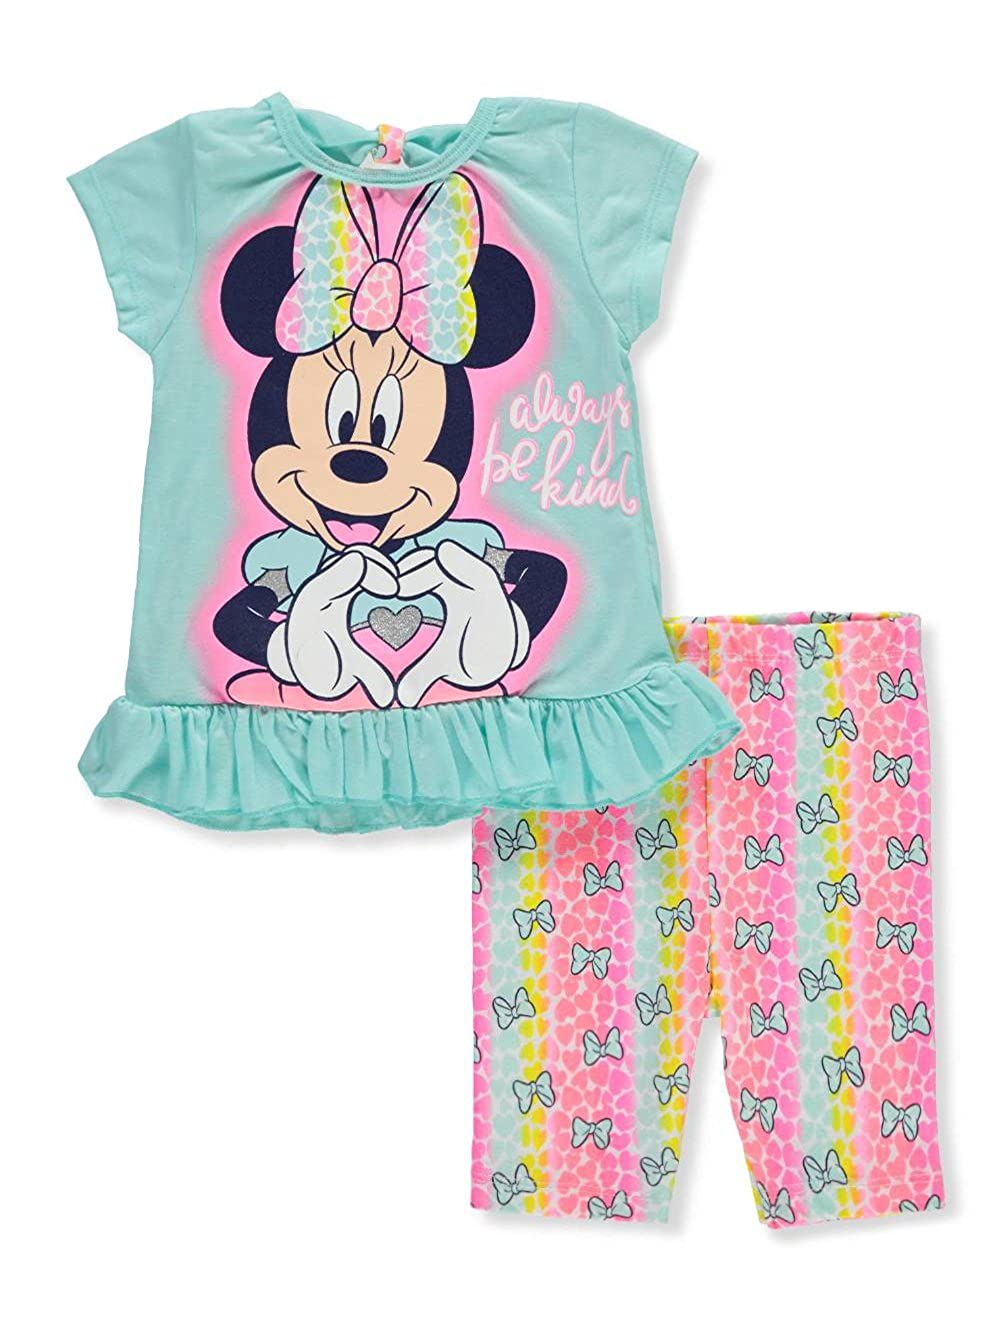 Cookie's Kids Disney Minnie Mouse Girls' 2-Piece Short Set Outfit 3t